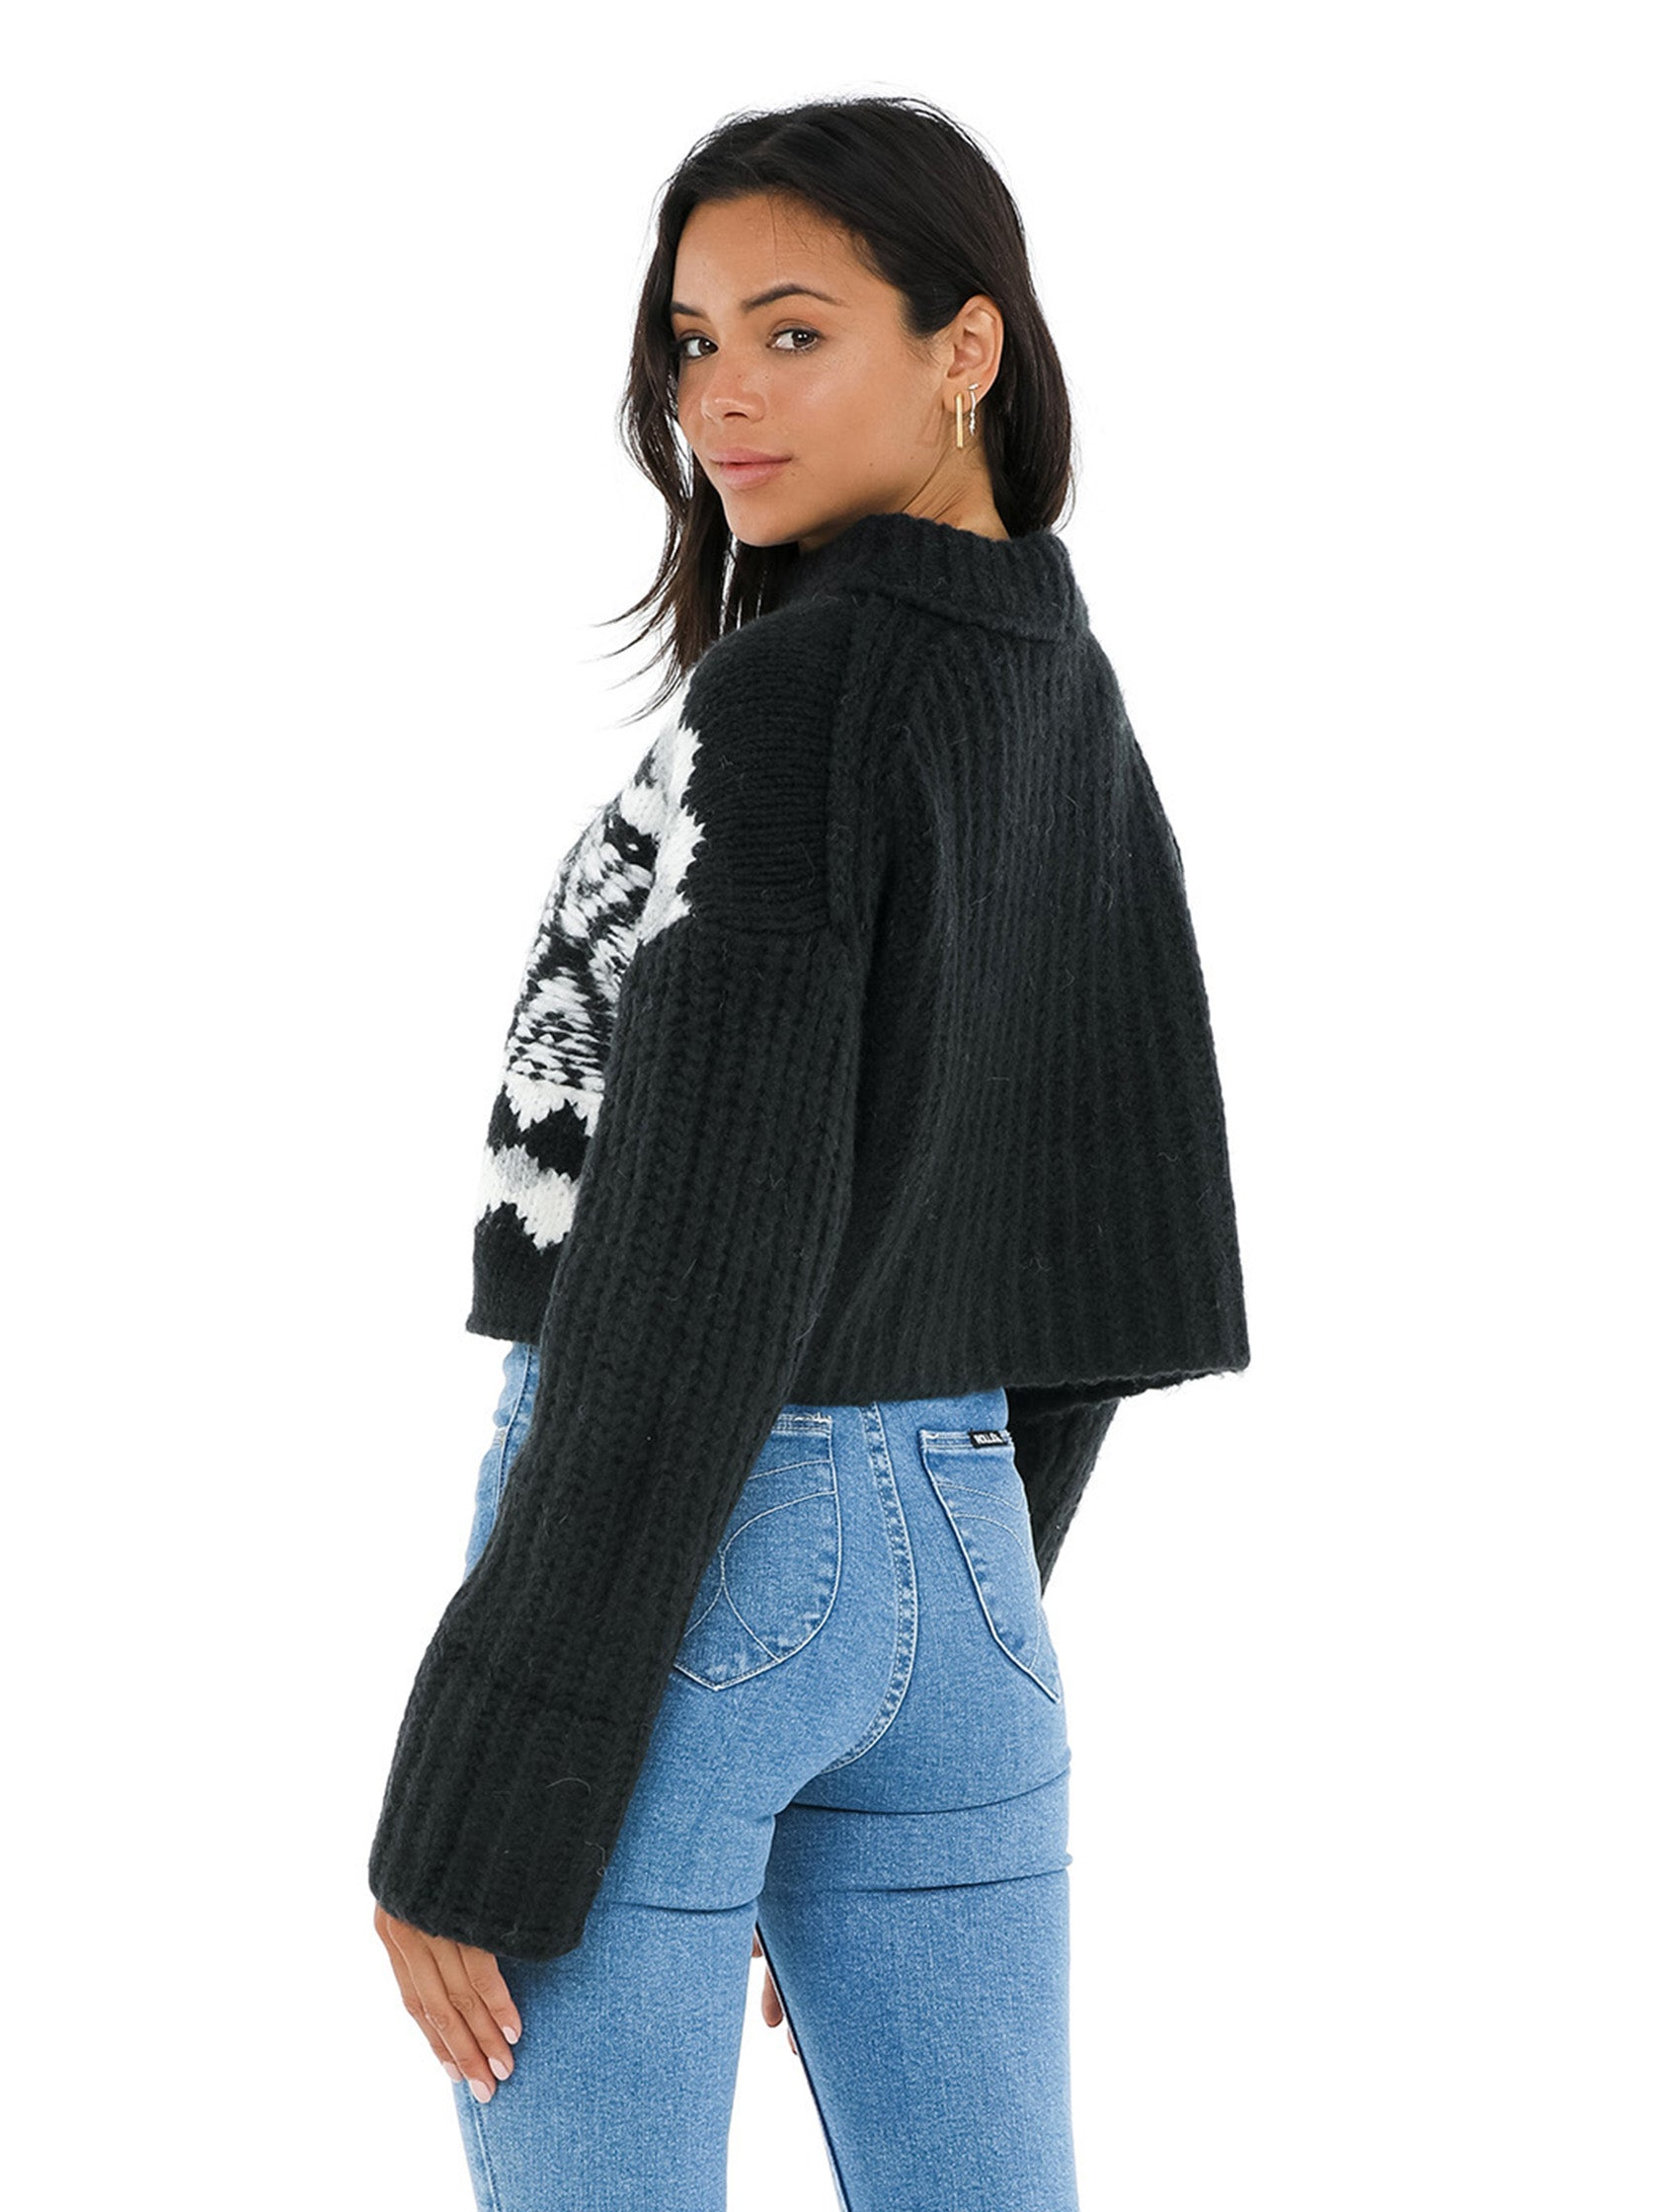 Girl wearing a sweater rental from Free People called Alpine Pullover